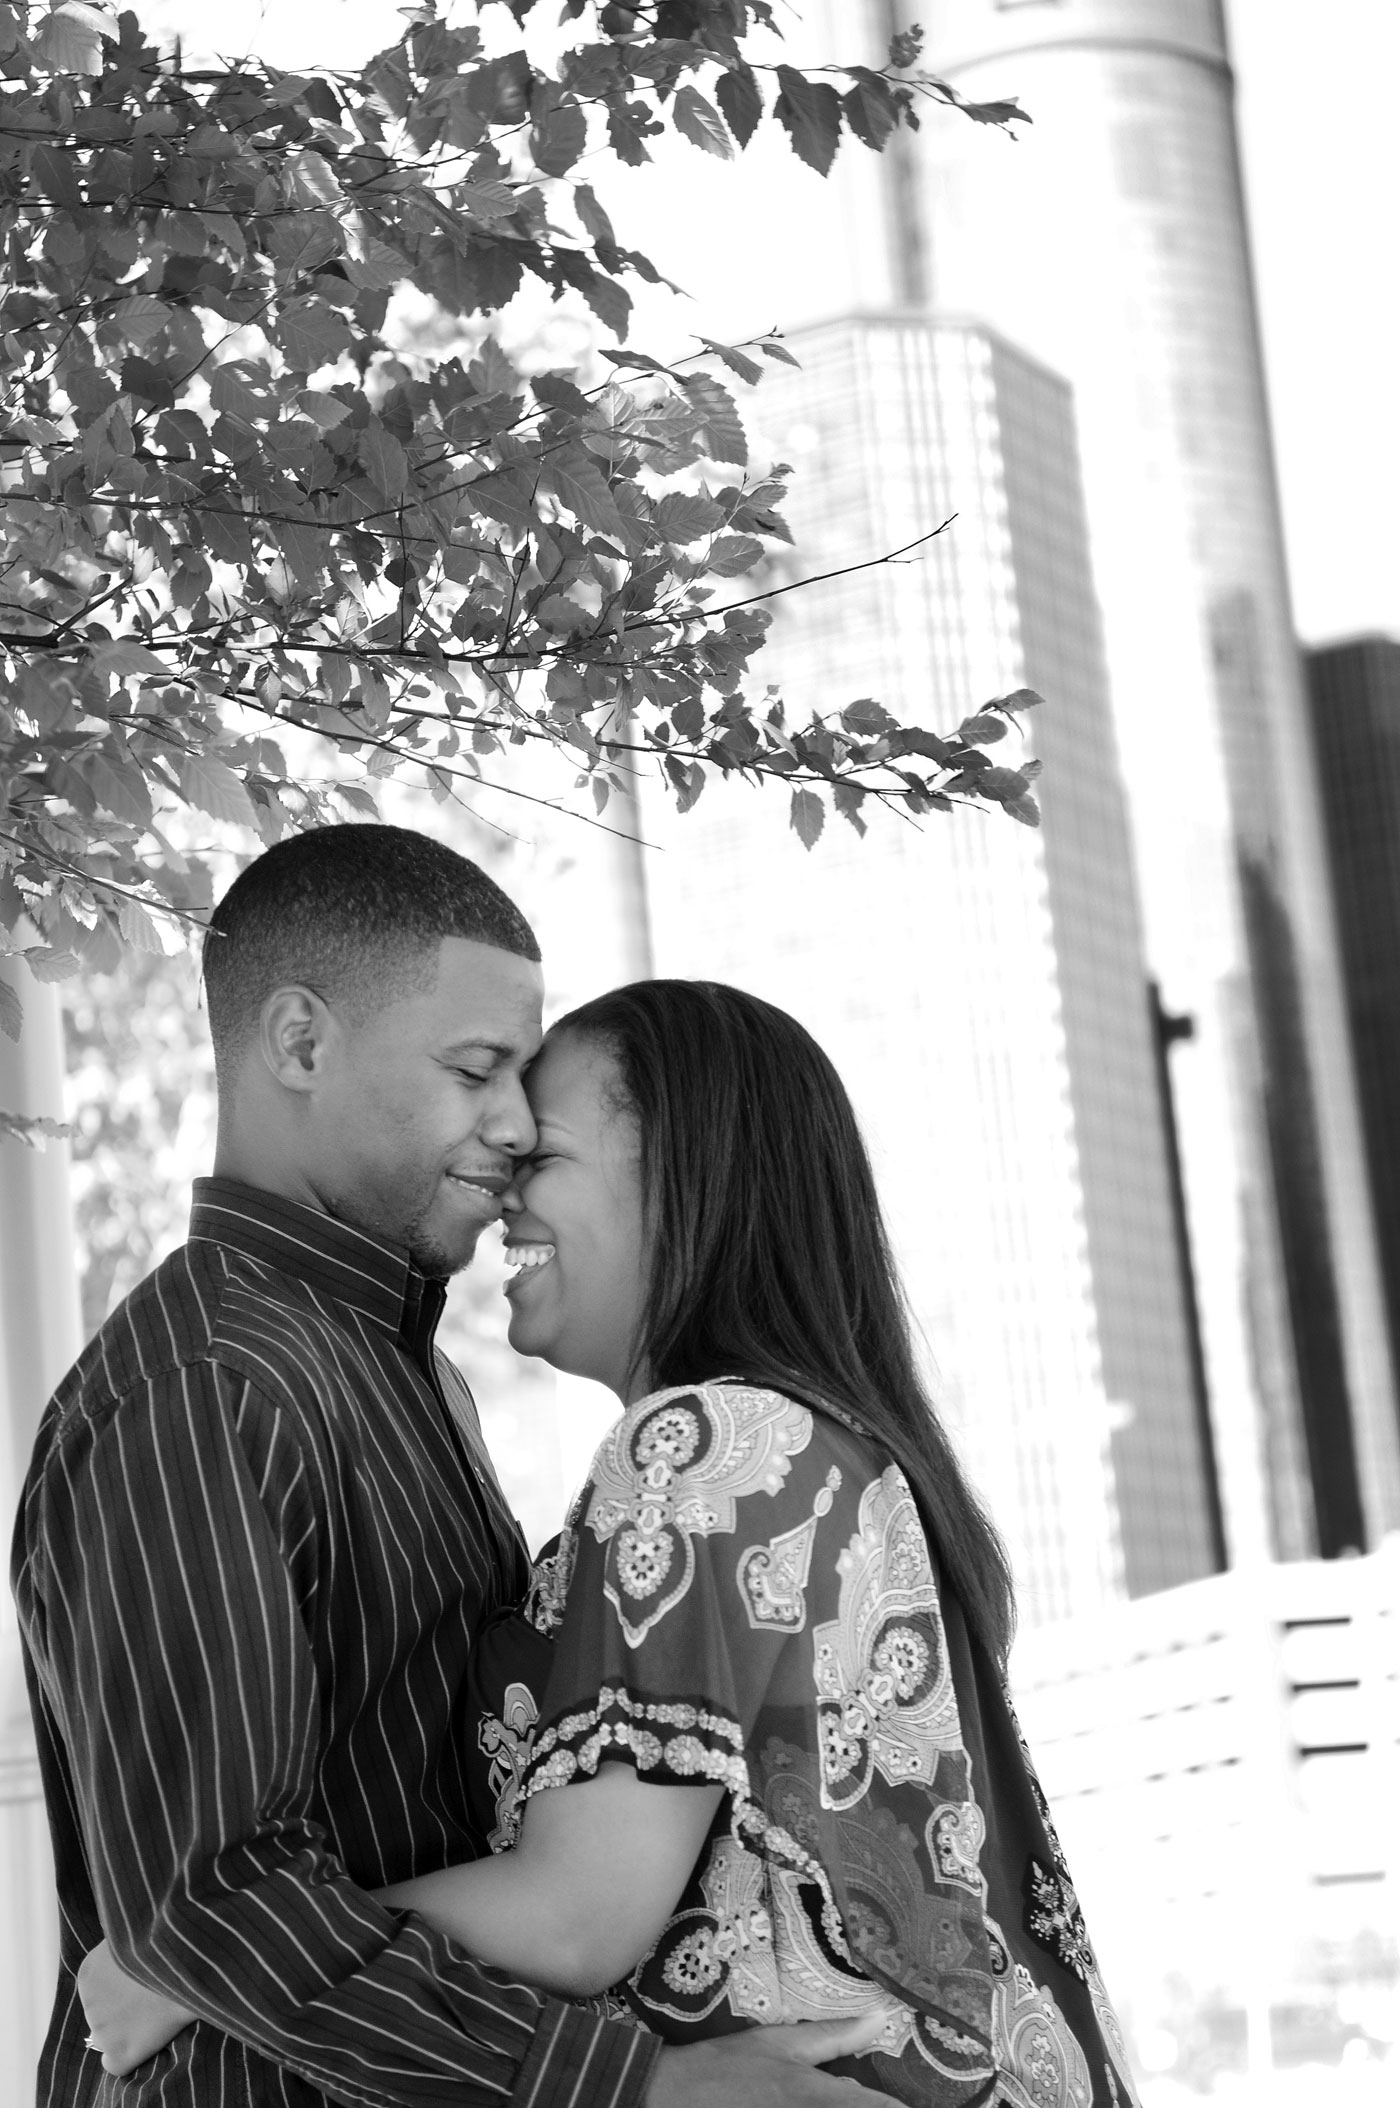 kyla-michael-engagement-detroit-michigan-riverwalk-downtown-2